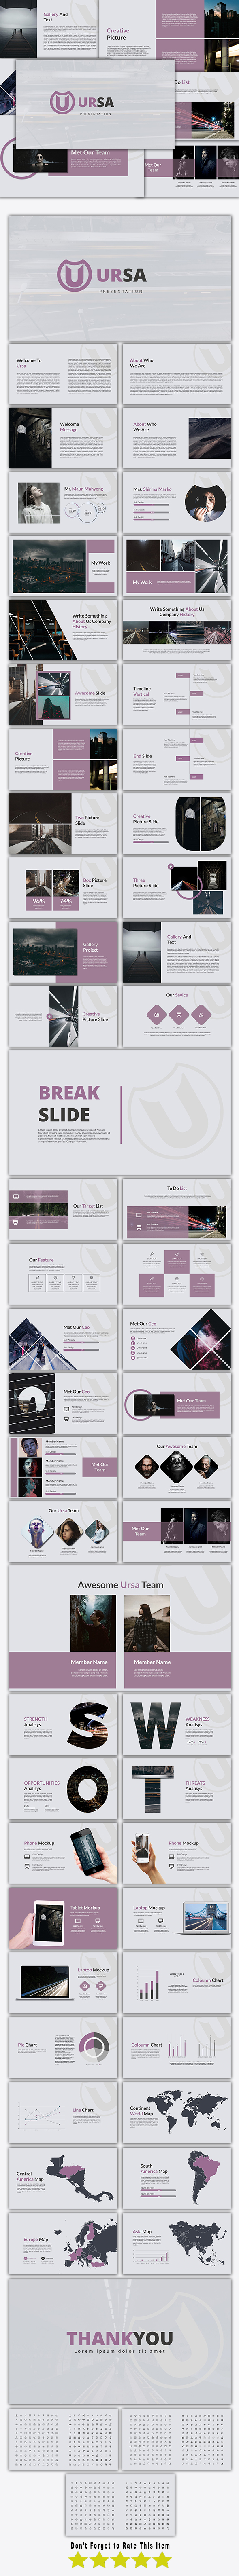 Ursa - Google Slide Template - Google Slides Presentation Templates